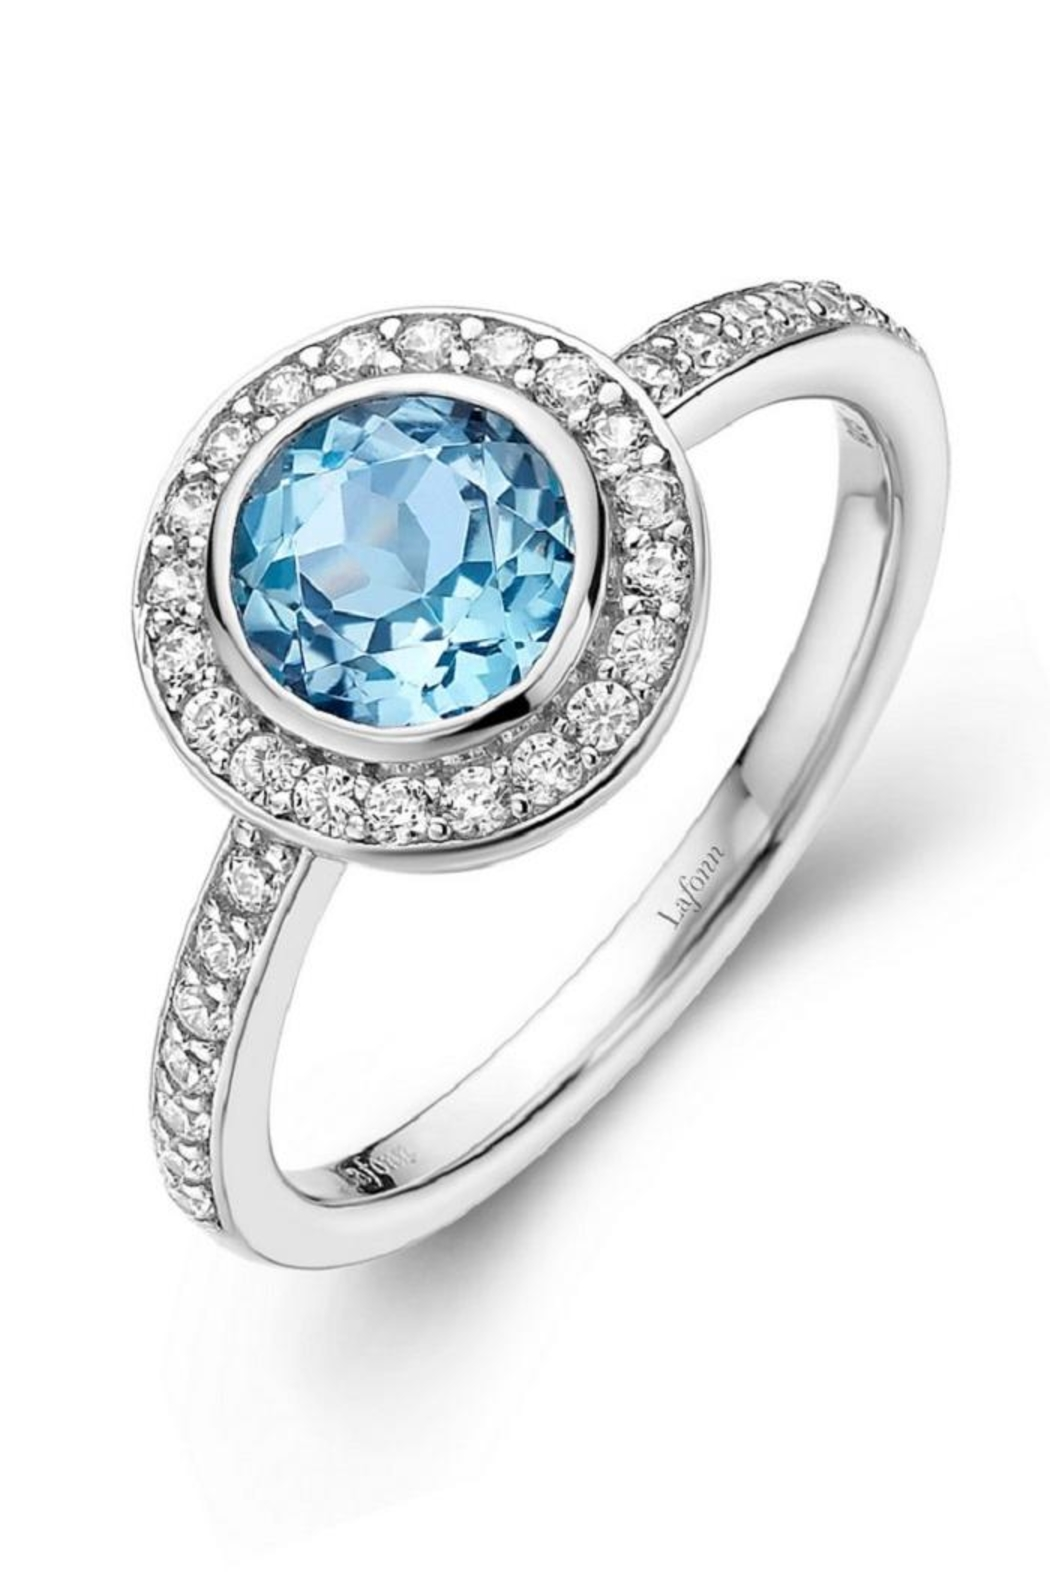 cut sale blue topaz sterling carat silver amoro rings ring special cushion